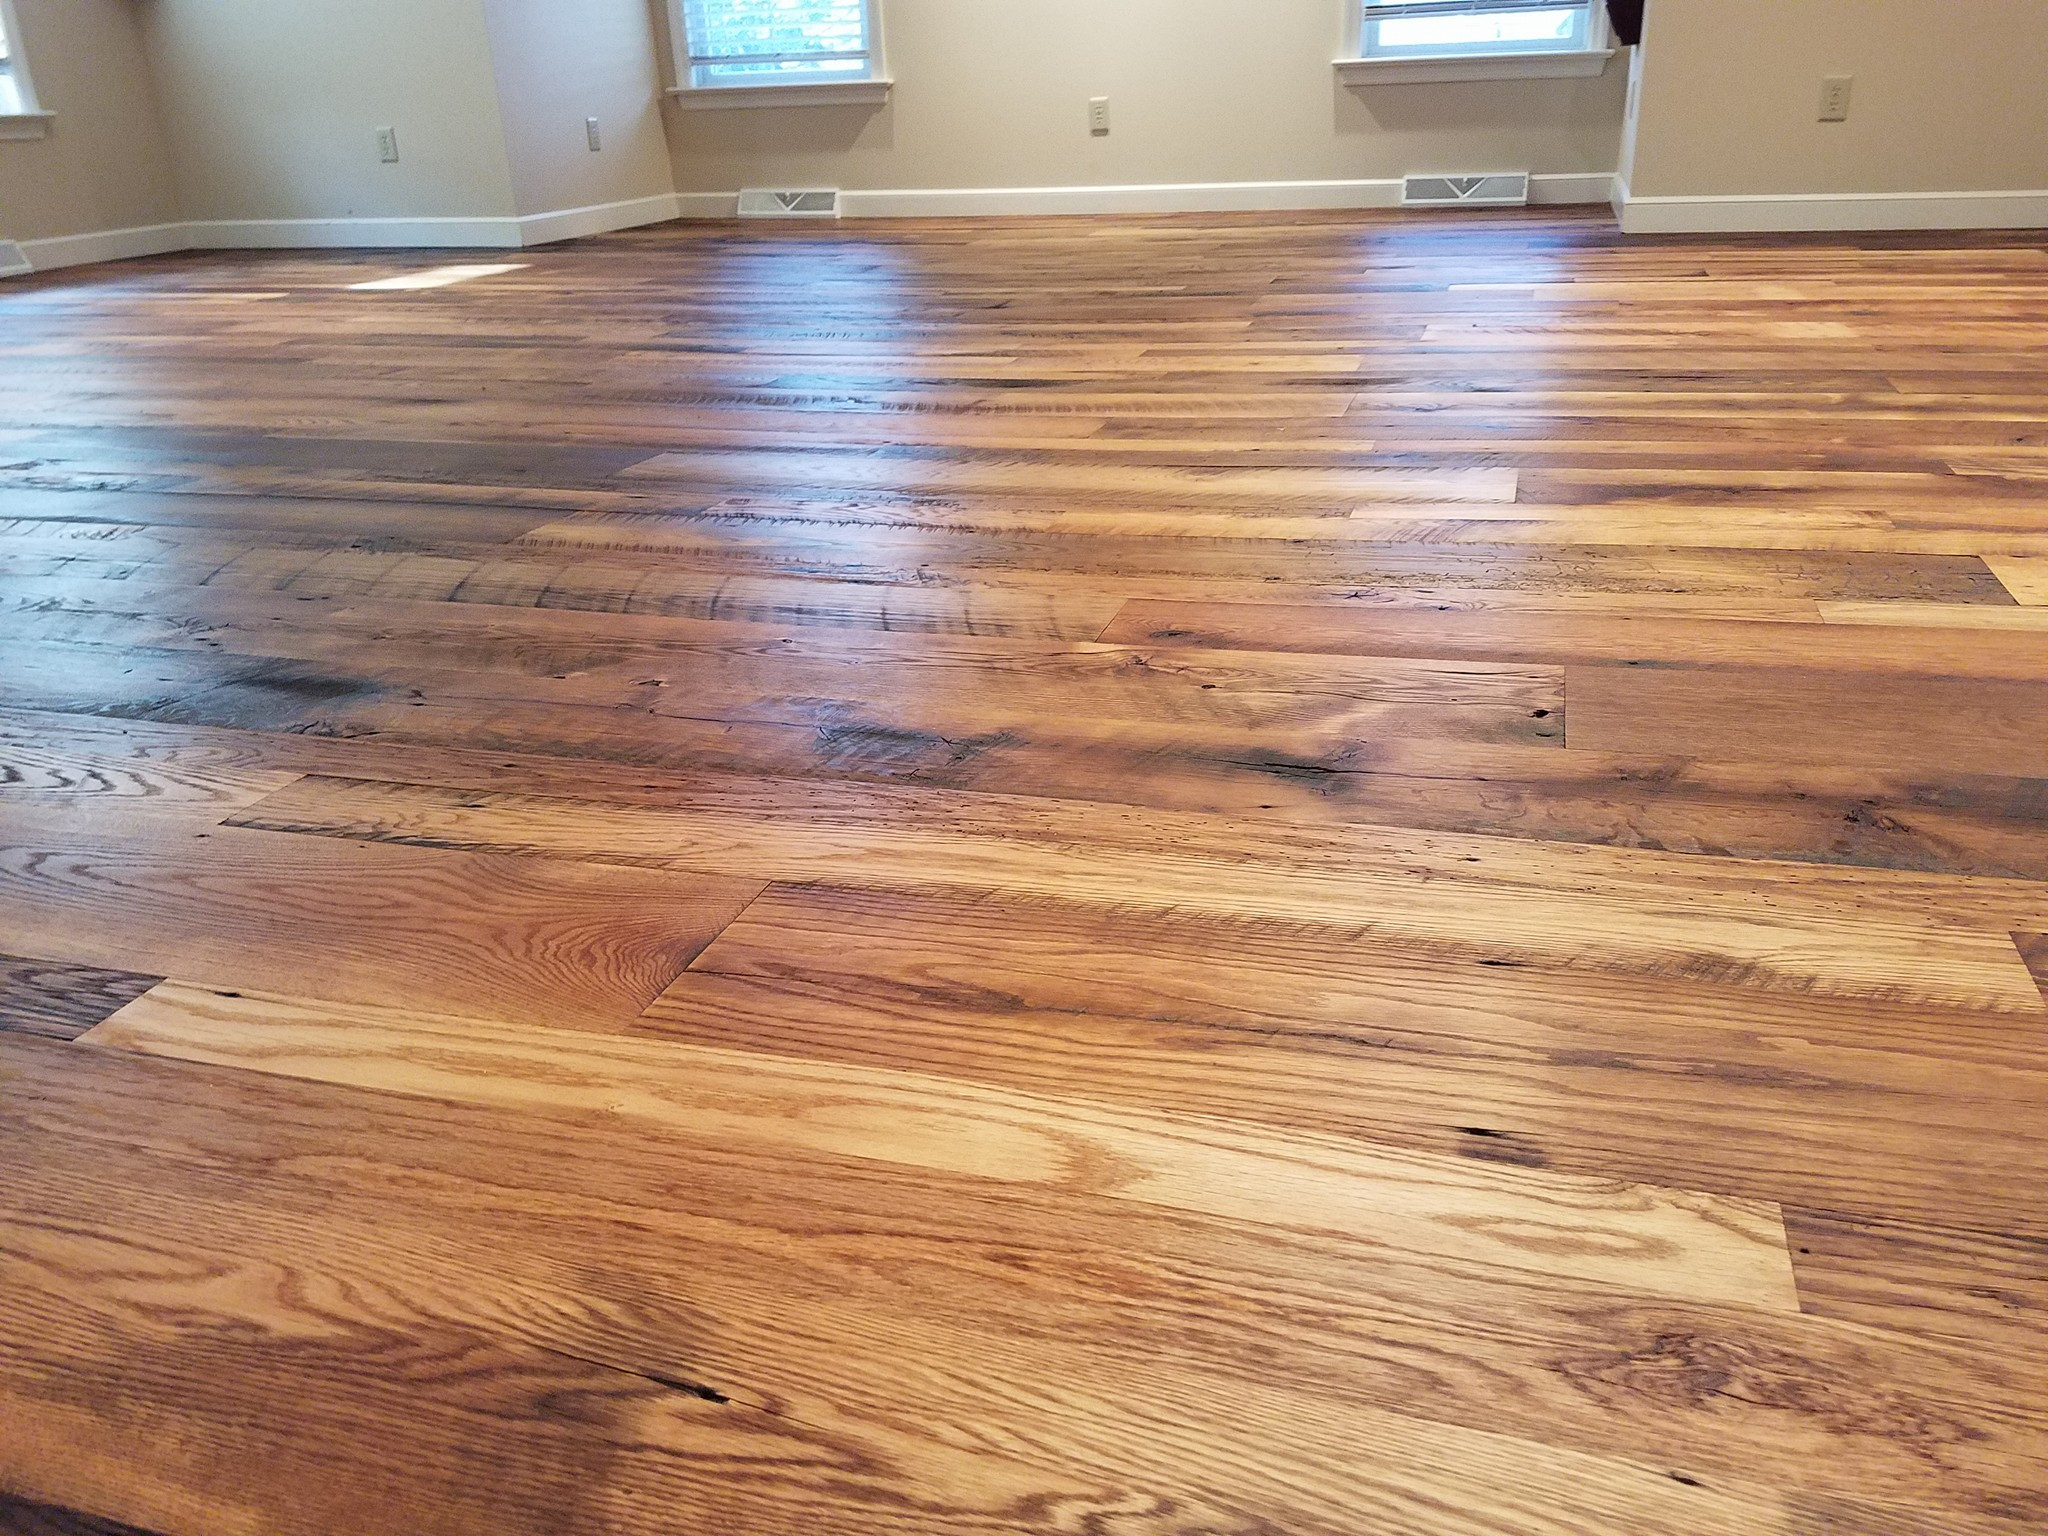 how much a square foot to refinish hardwood floors of vintage wood flooring regarding 15540630 1468260353201806 4284335561504308085 o